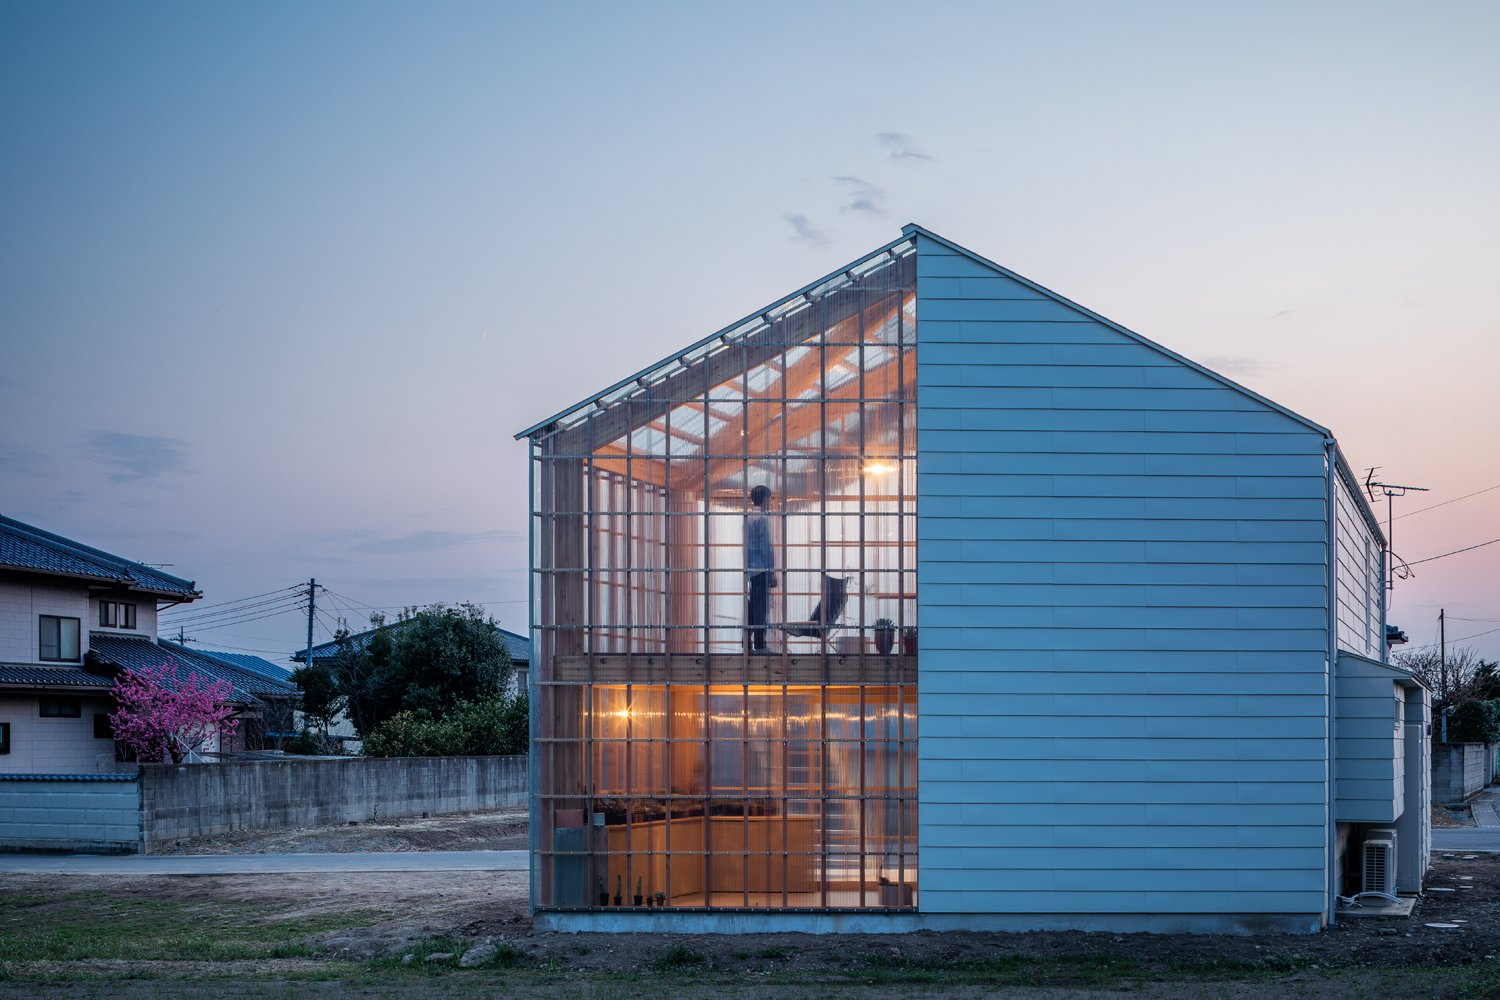 Exterior, Wood Siding Material, House Building Type, Glass Siding Material, Gable RoofLine, and Metal Roof Material  Photos from This Dreamy Japanese Abode Is Part Greenhouse